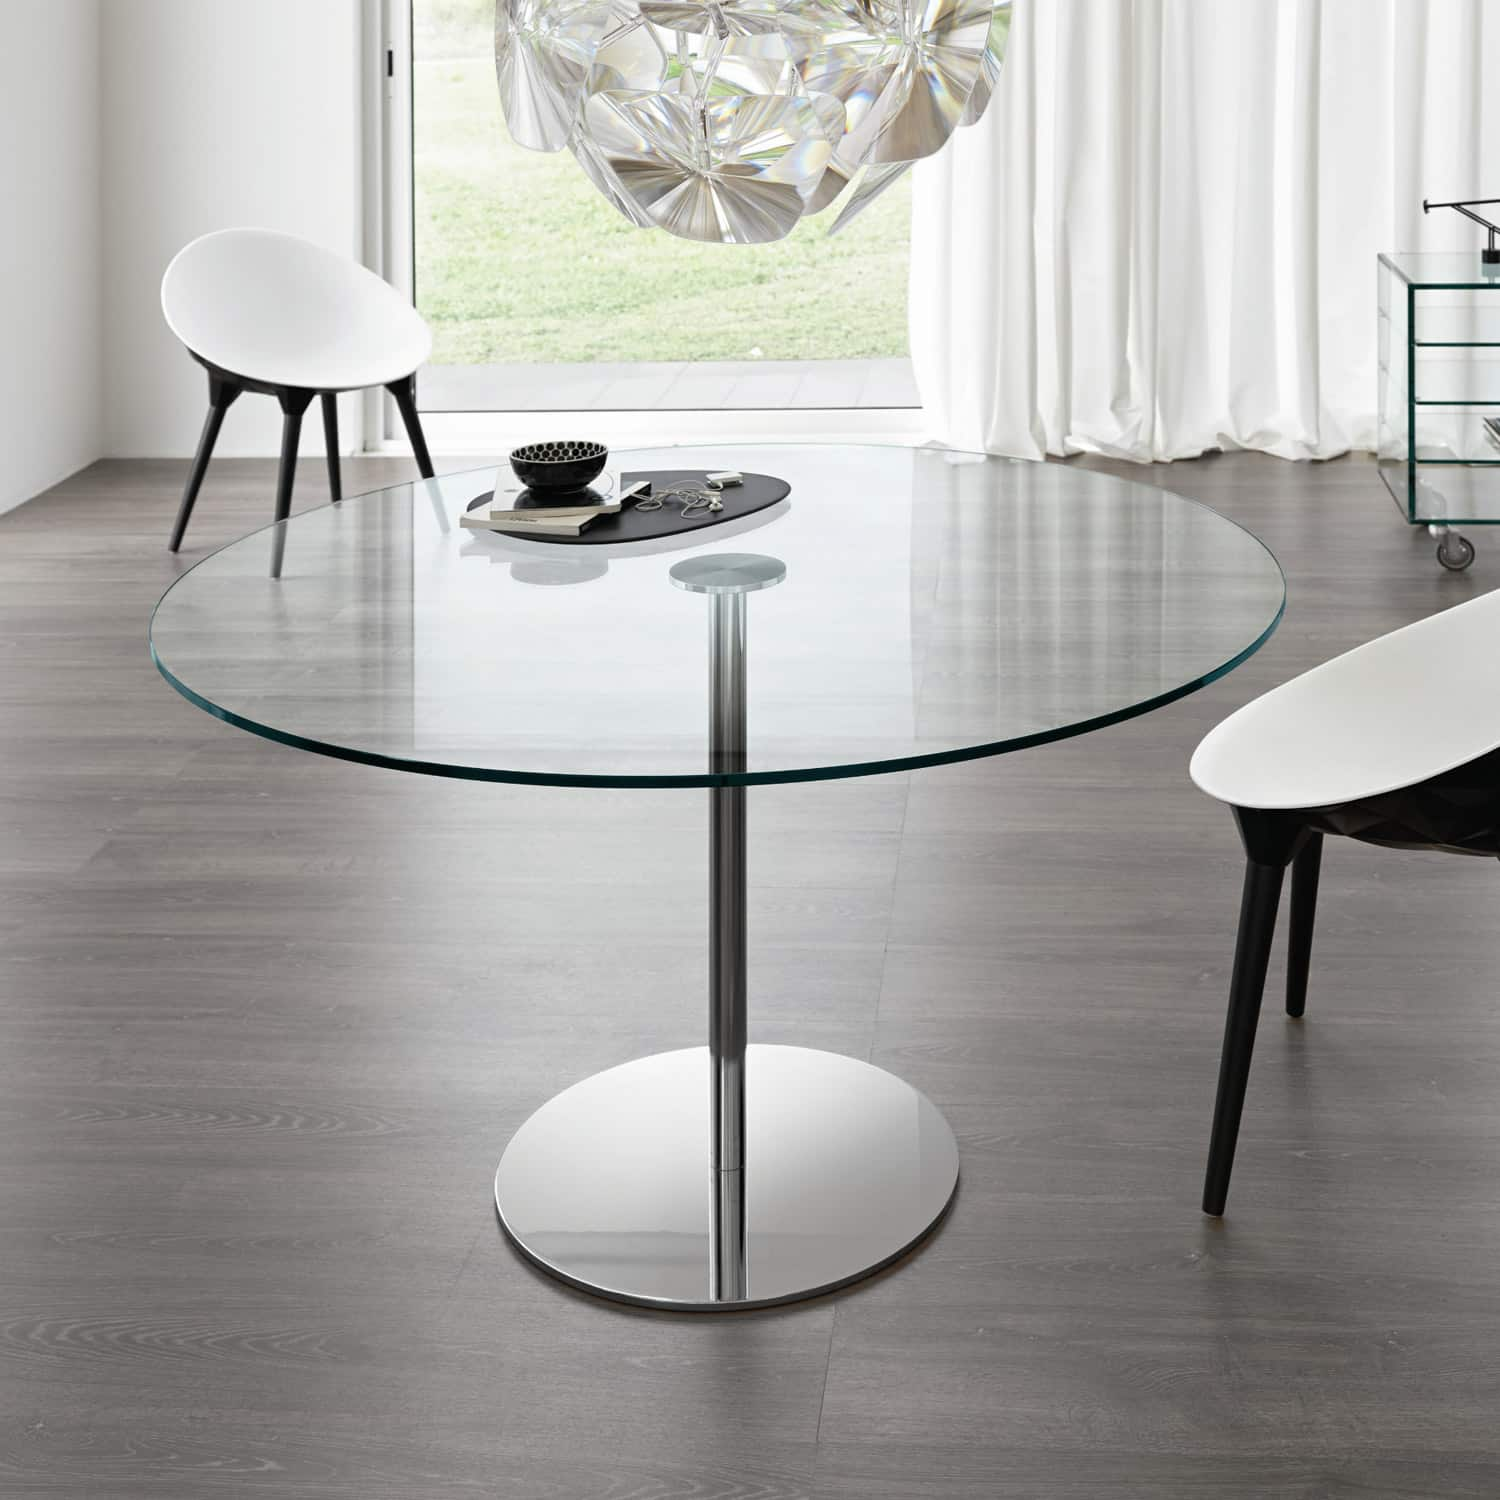 Farniente round glass and metal dining table by tonelli for Glass furniture